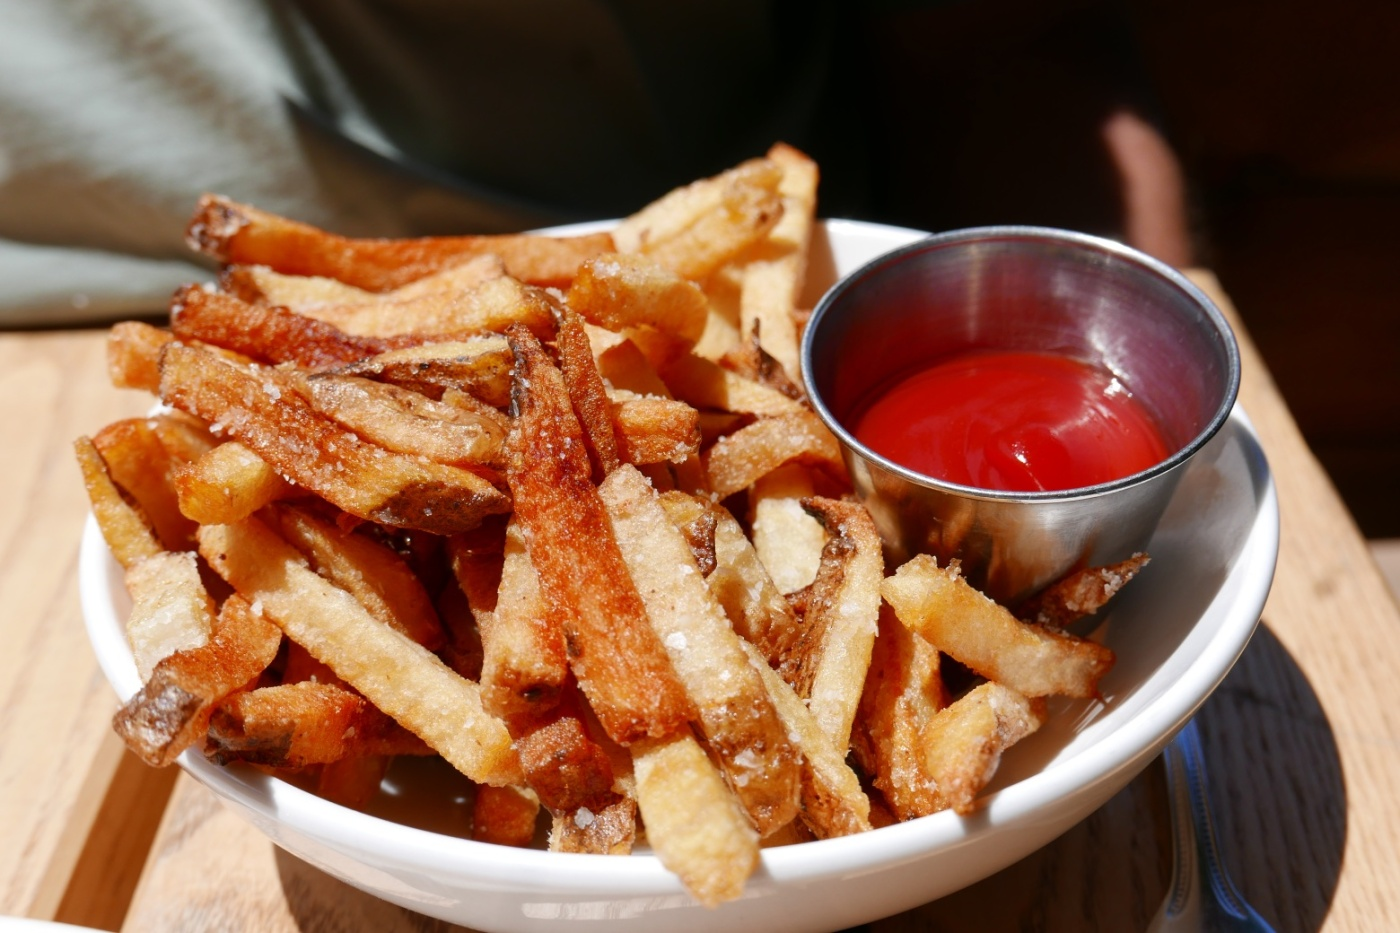 Beef fat frites, harissa ketchup, Perfectly crisp and flavorful.